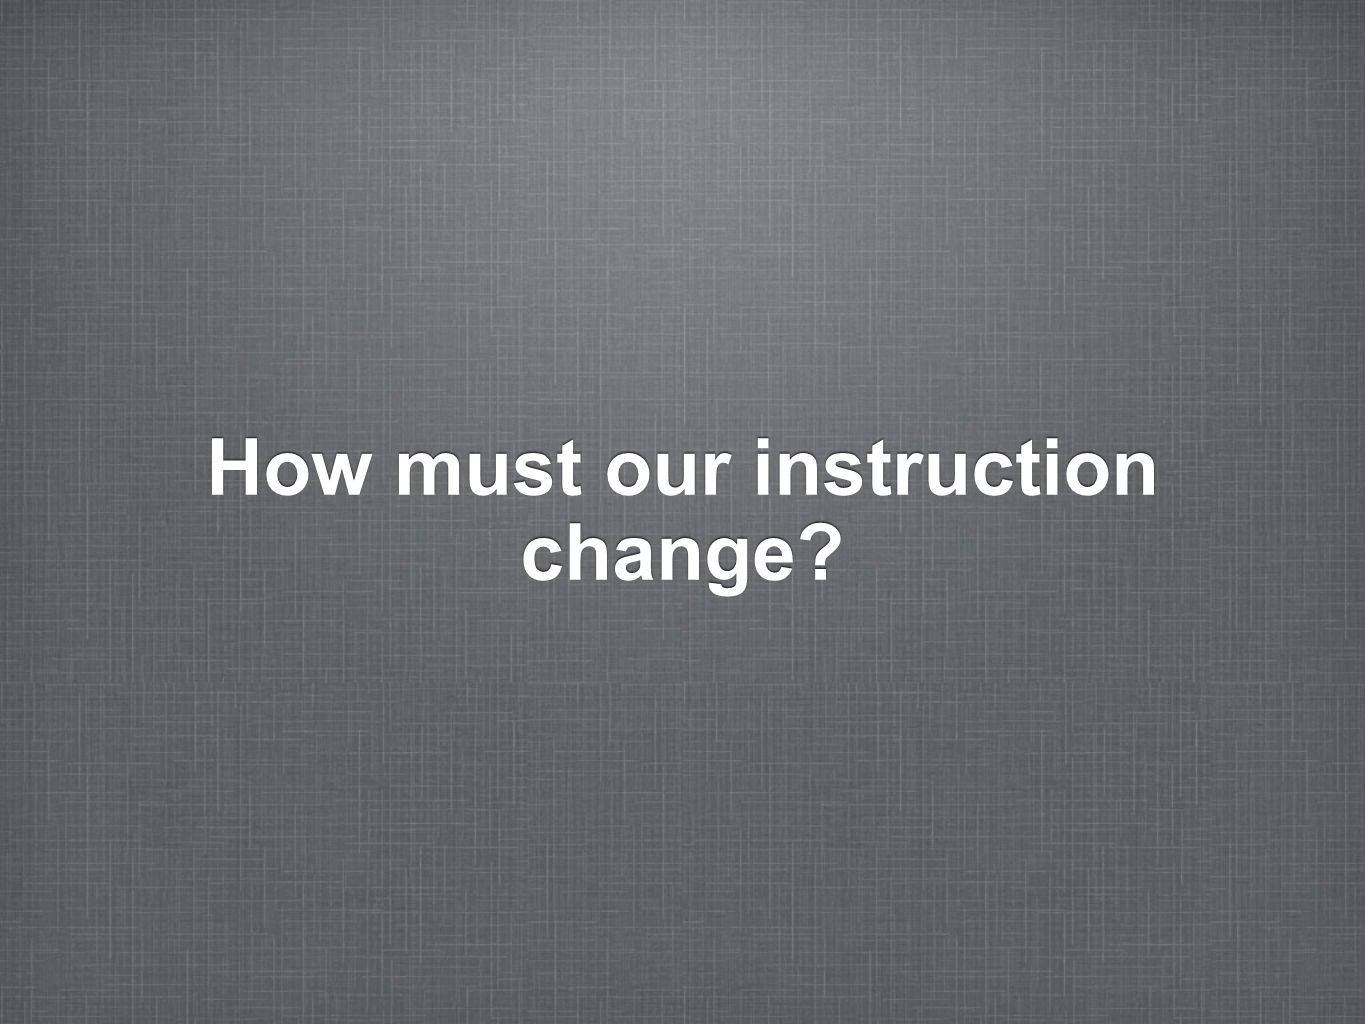 How must our instruction change